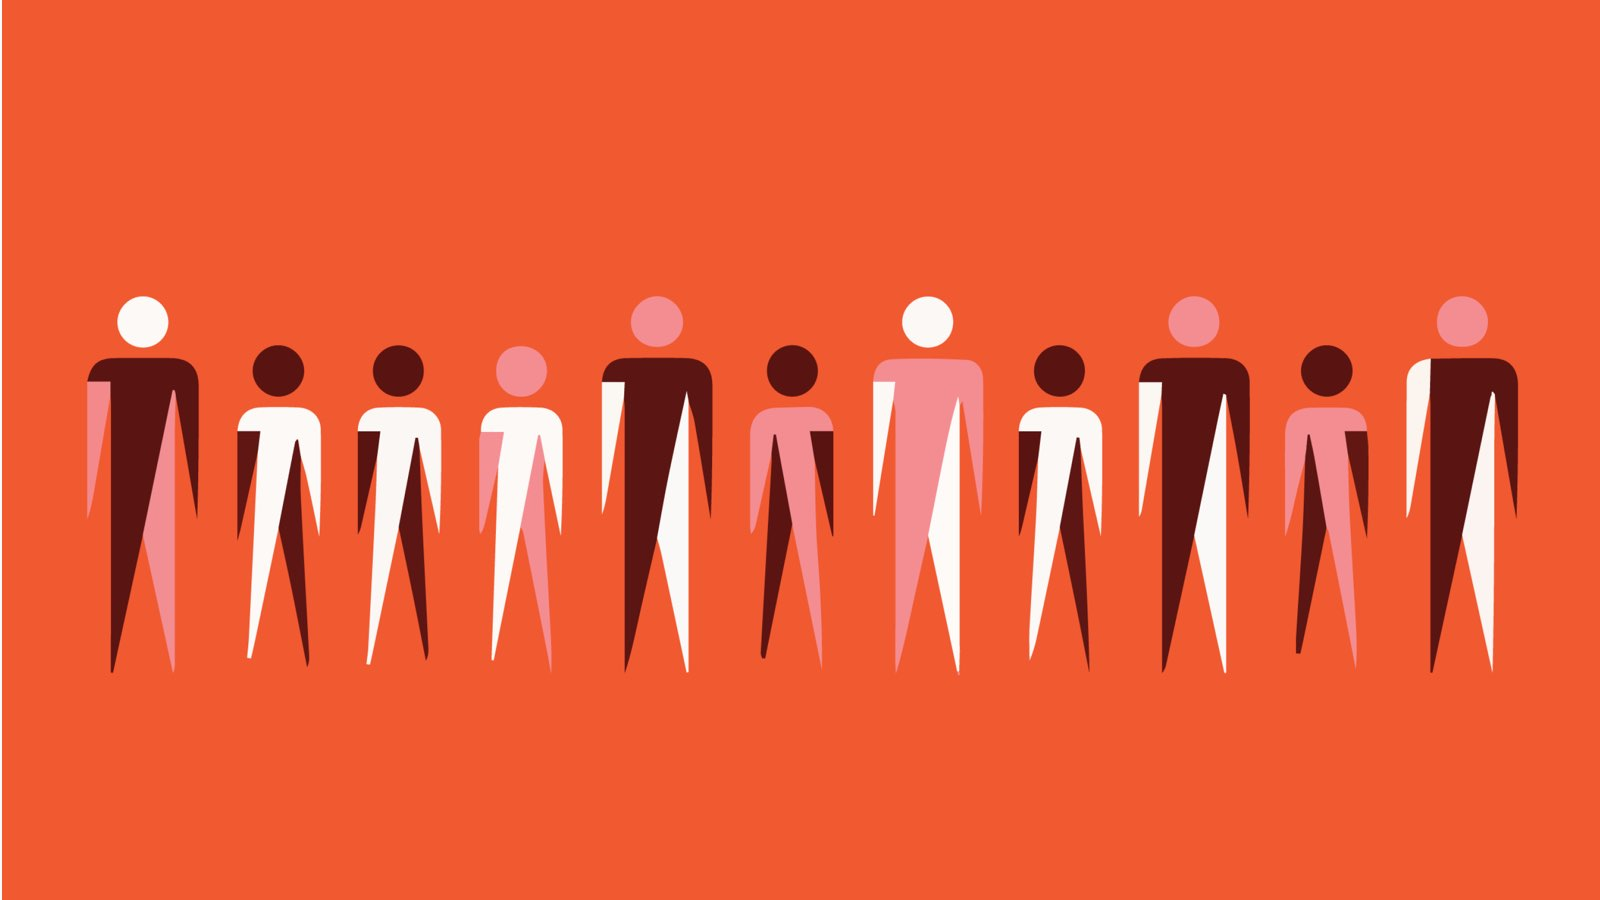 A red banner graphic with people standing in a line